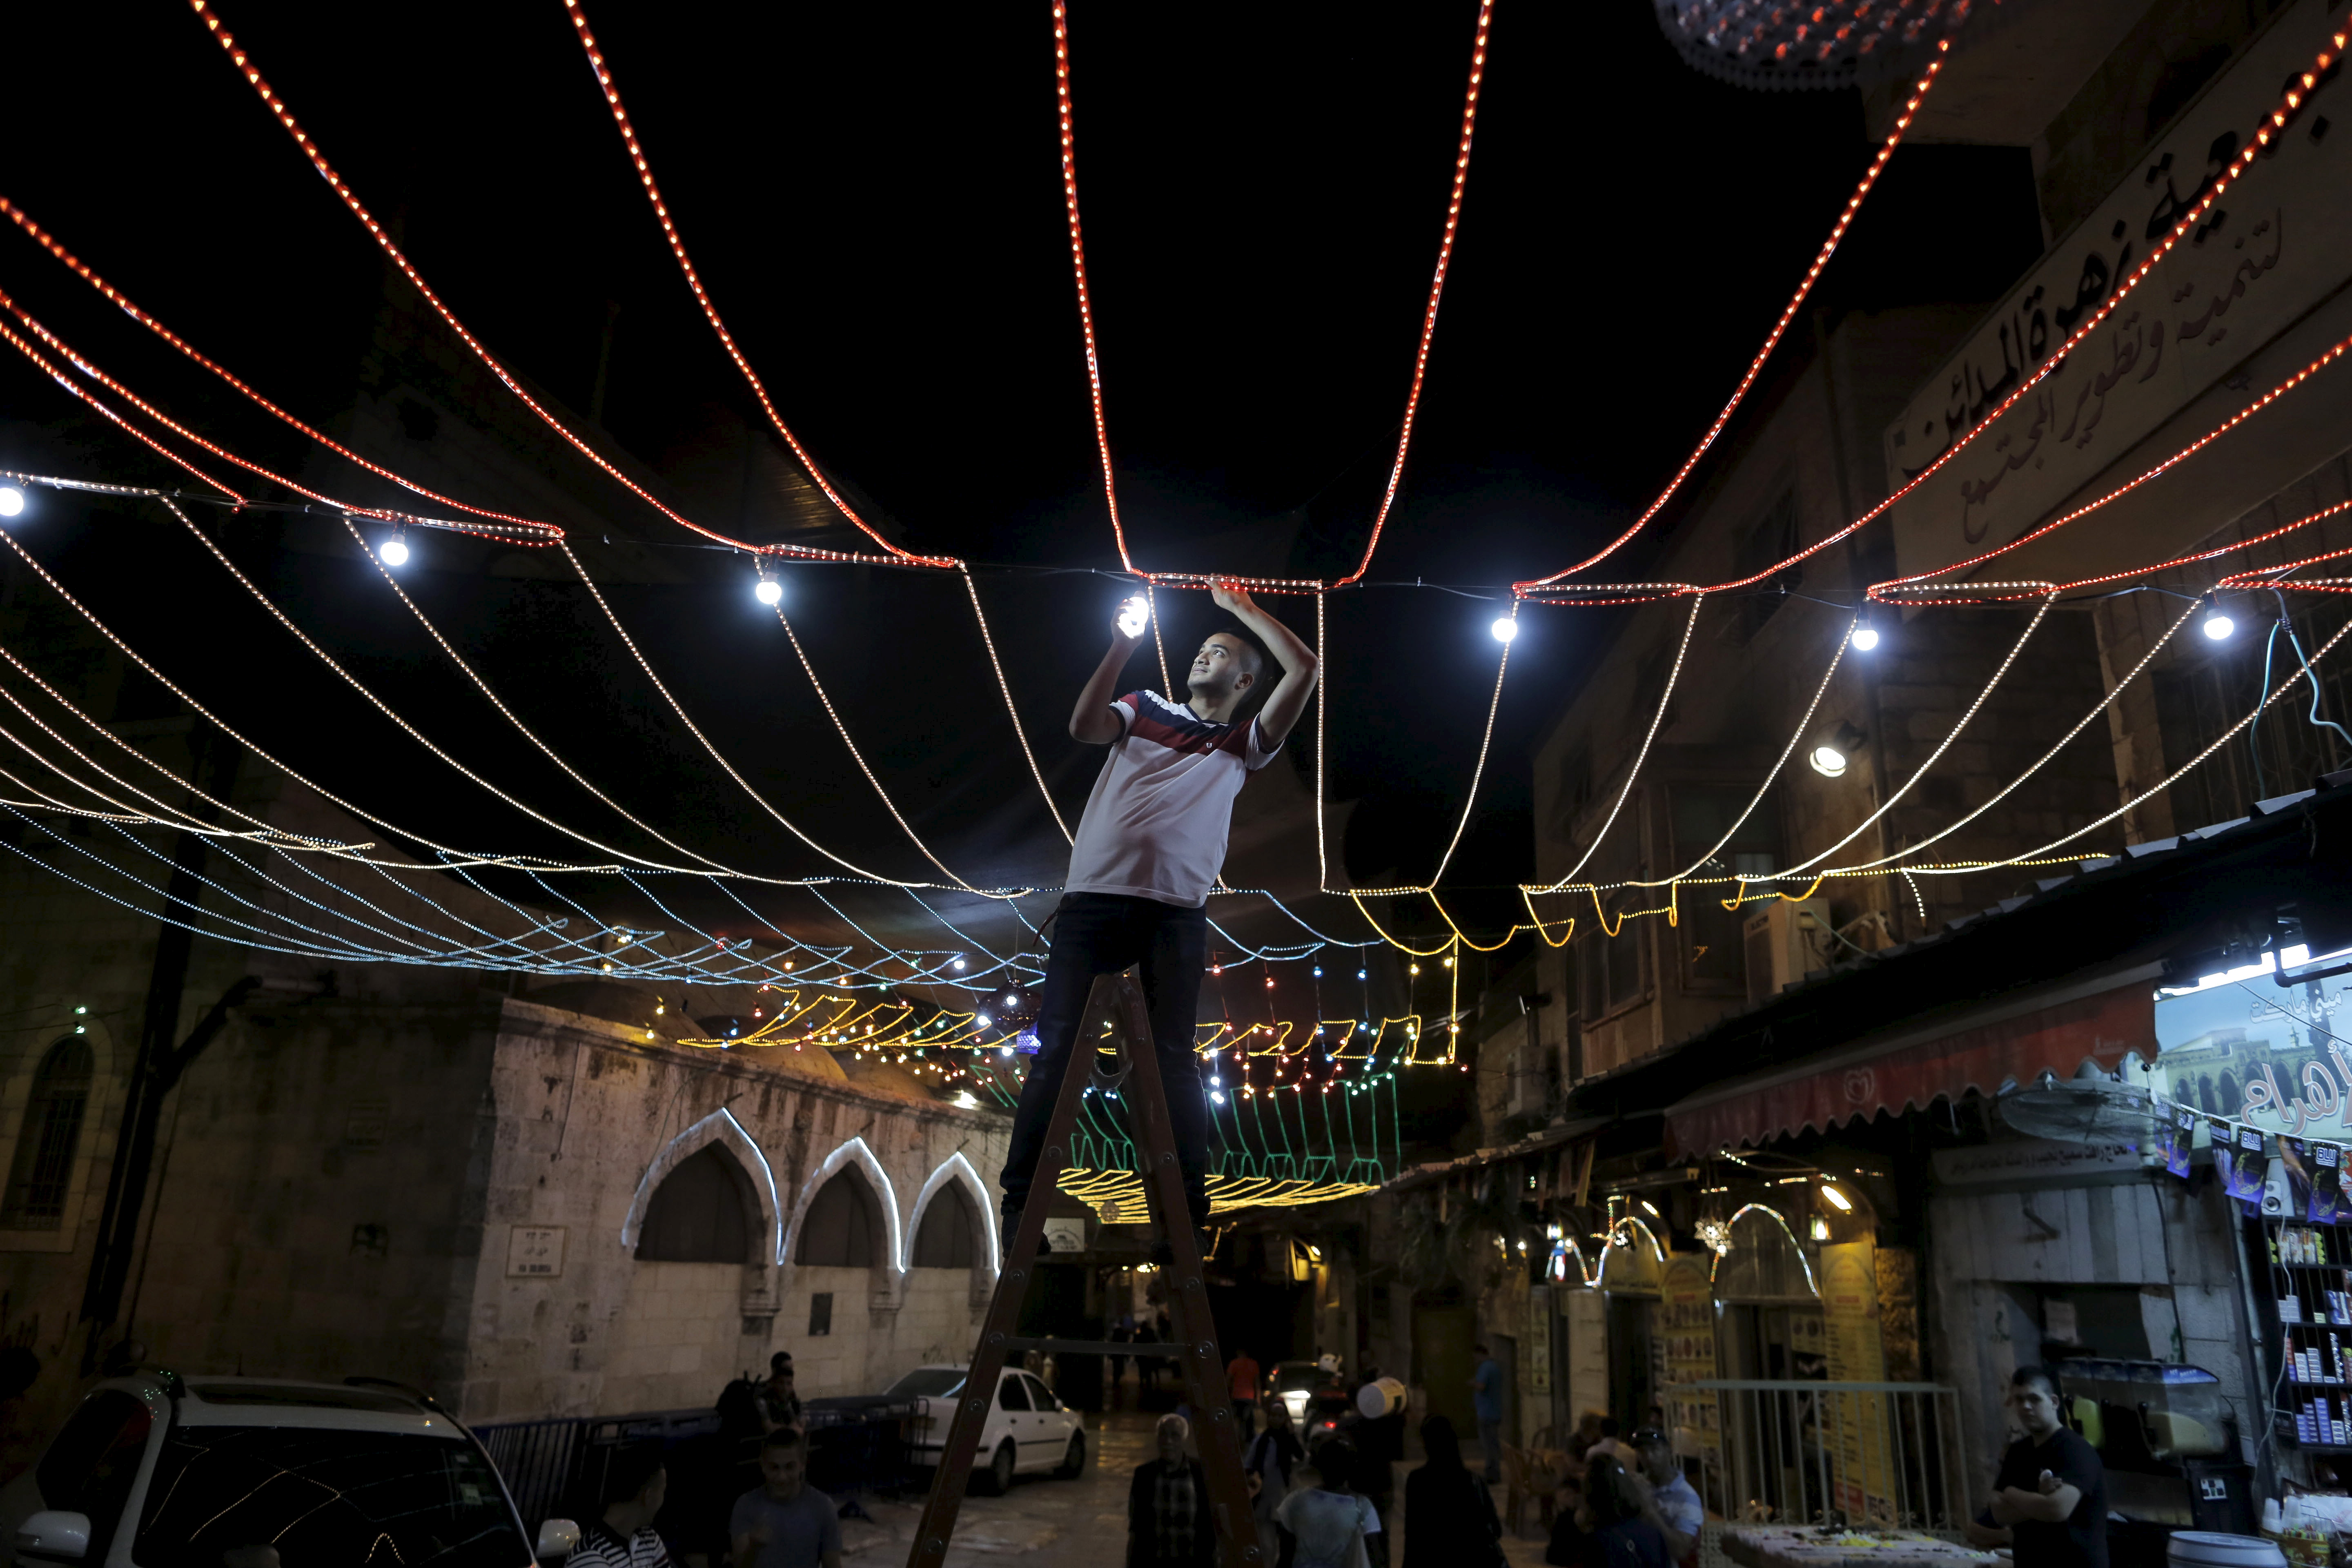 A Palestinian man hangs decorations for the upcoming holy month of Ramadan outside his home in Jerusalem's Old City on June 16, 2015.  Photo by Ammar Awad/Reuters